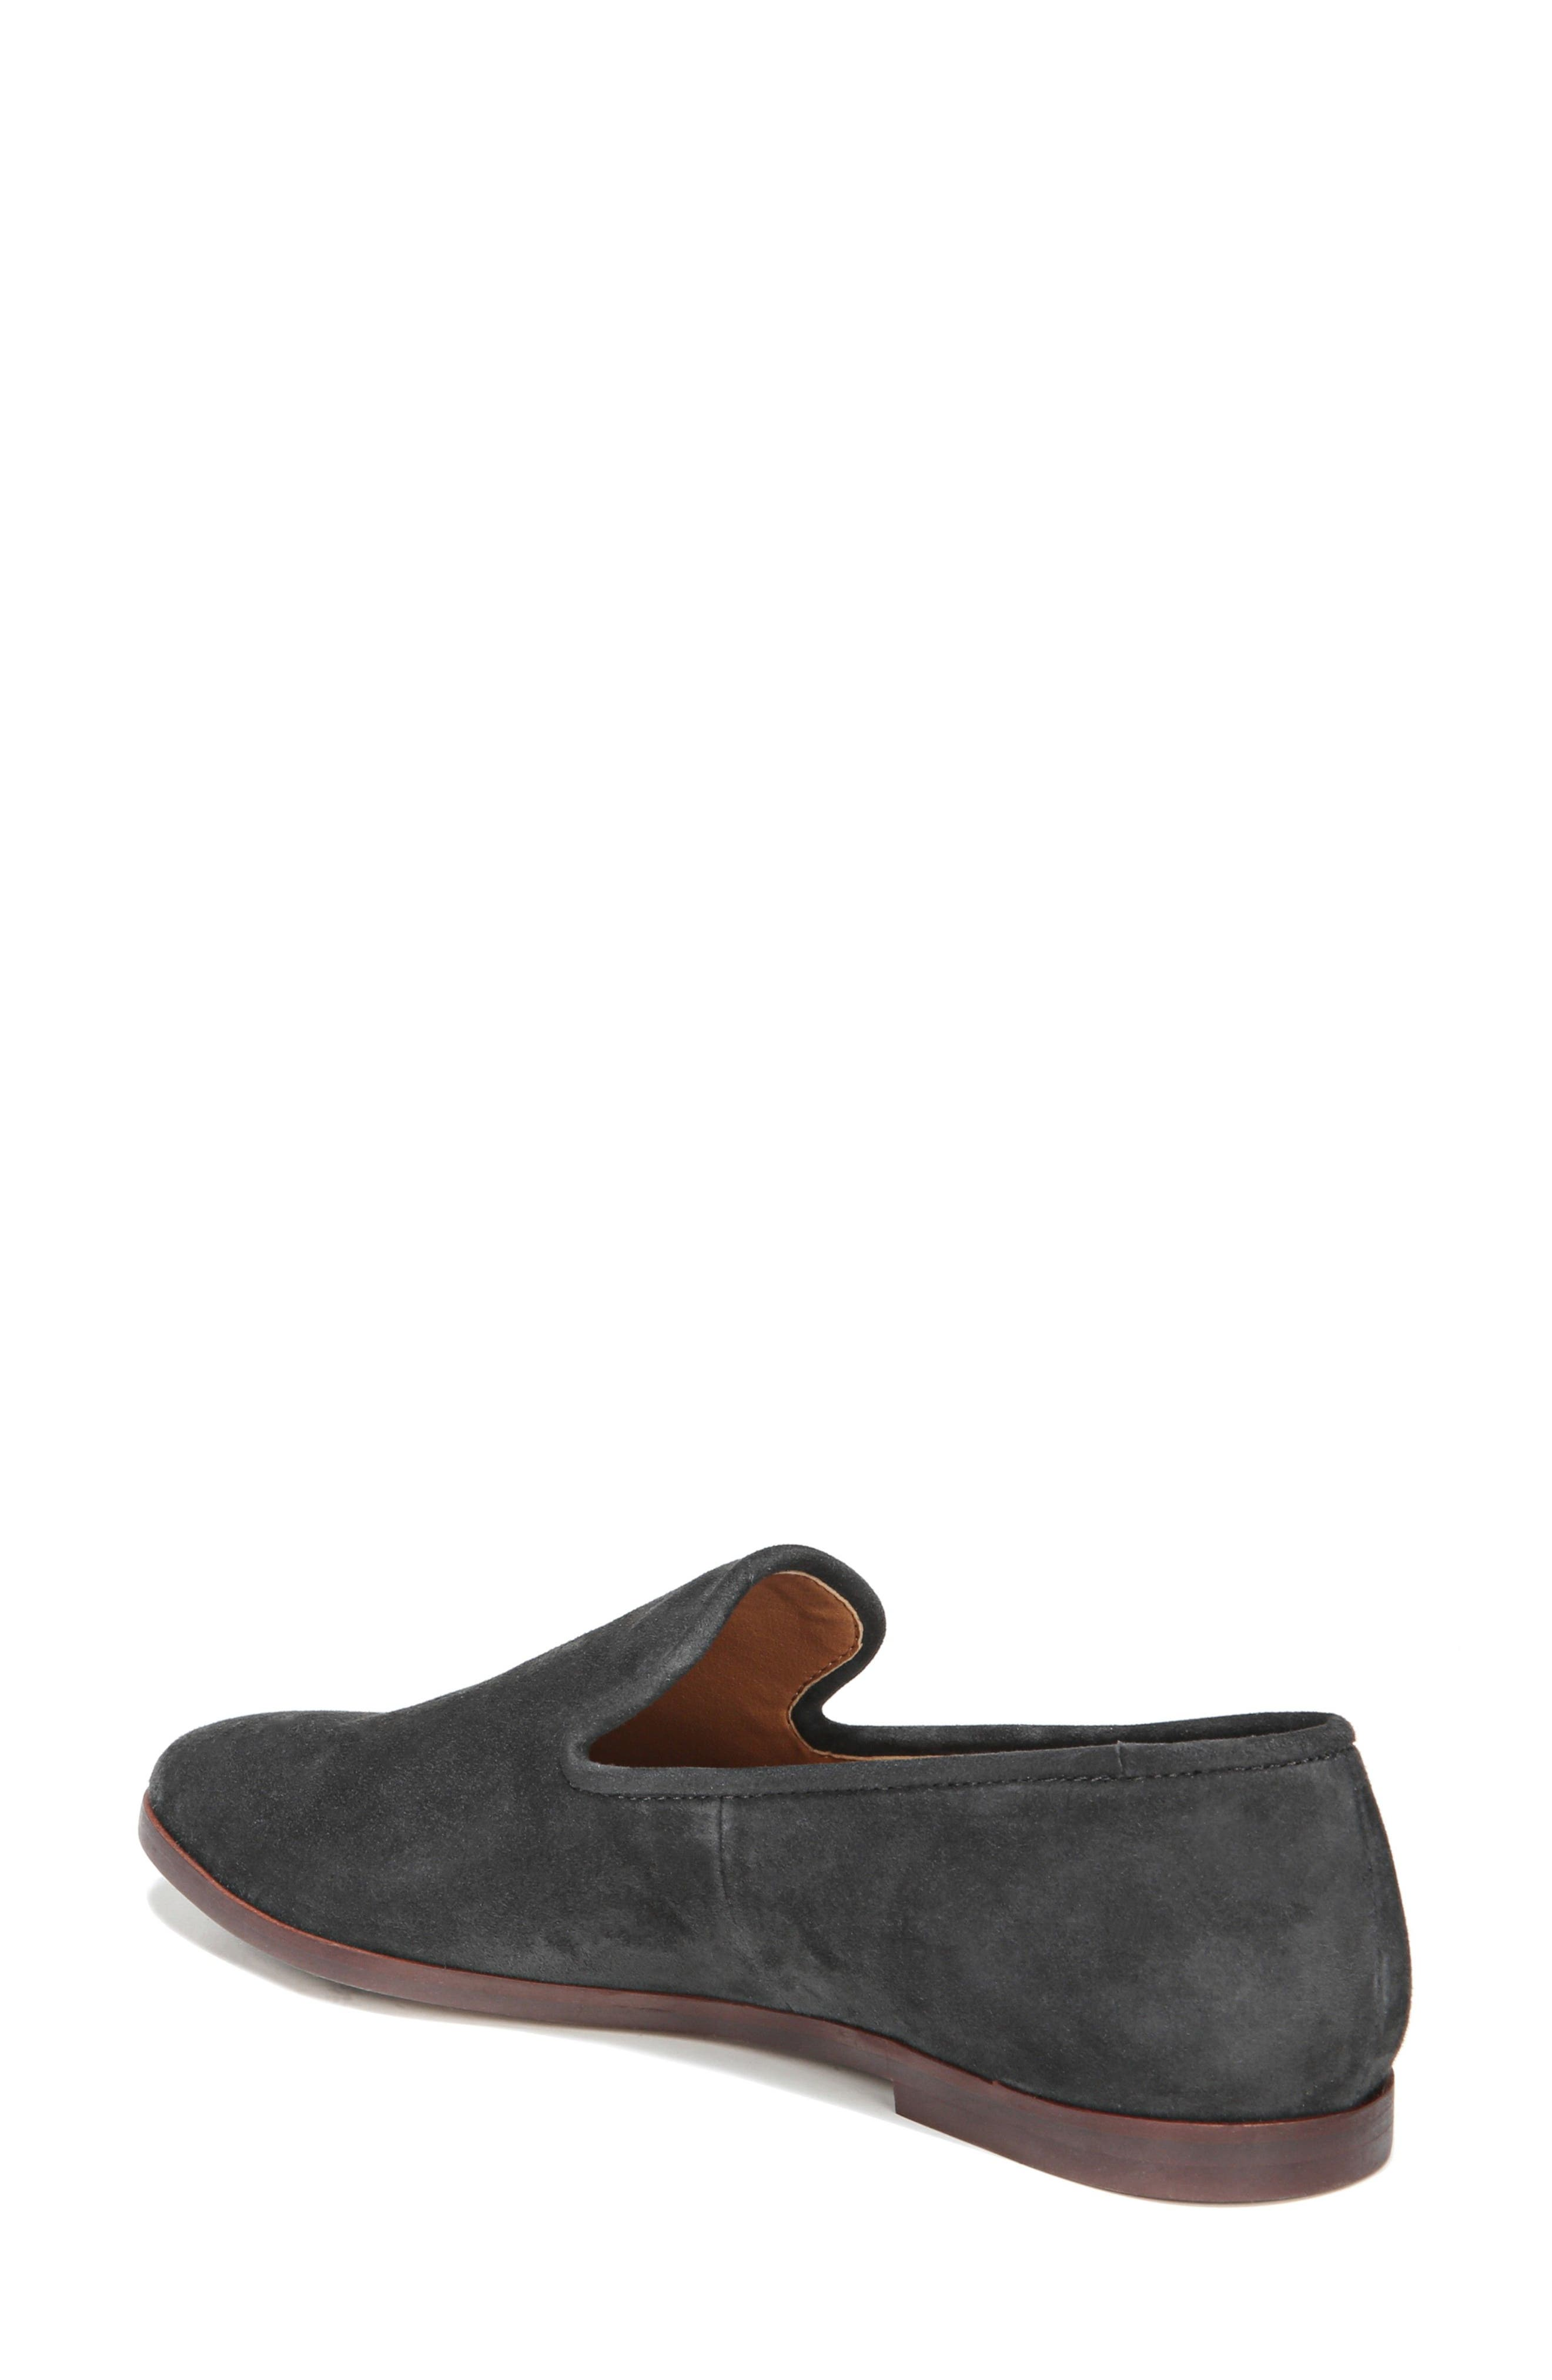 Ayers Loafer Flat,                             Alternate thumbnail 12, color,